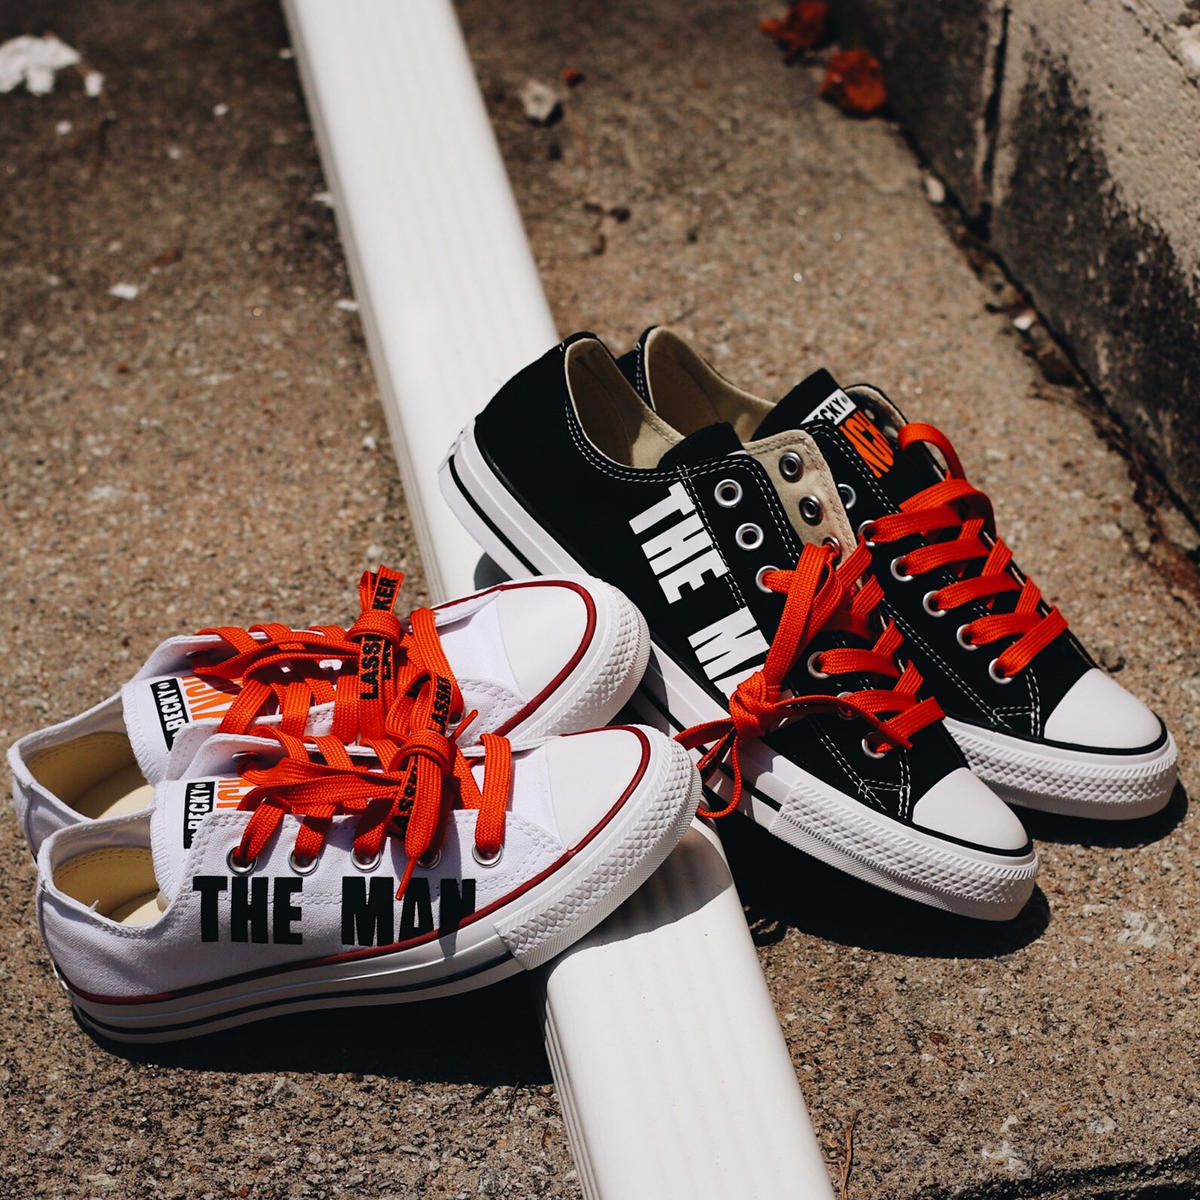 WWE teams with Converse and Foot Locker